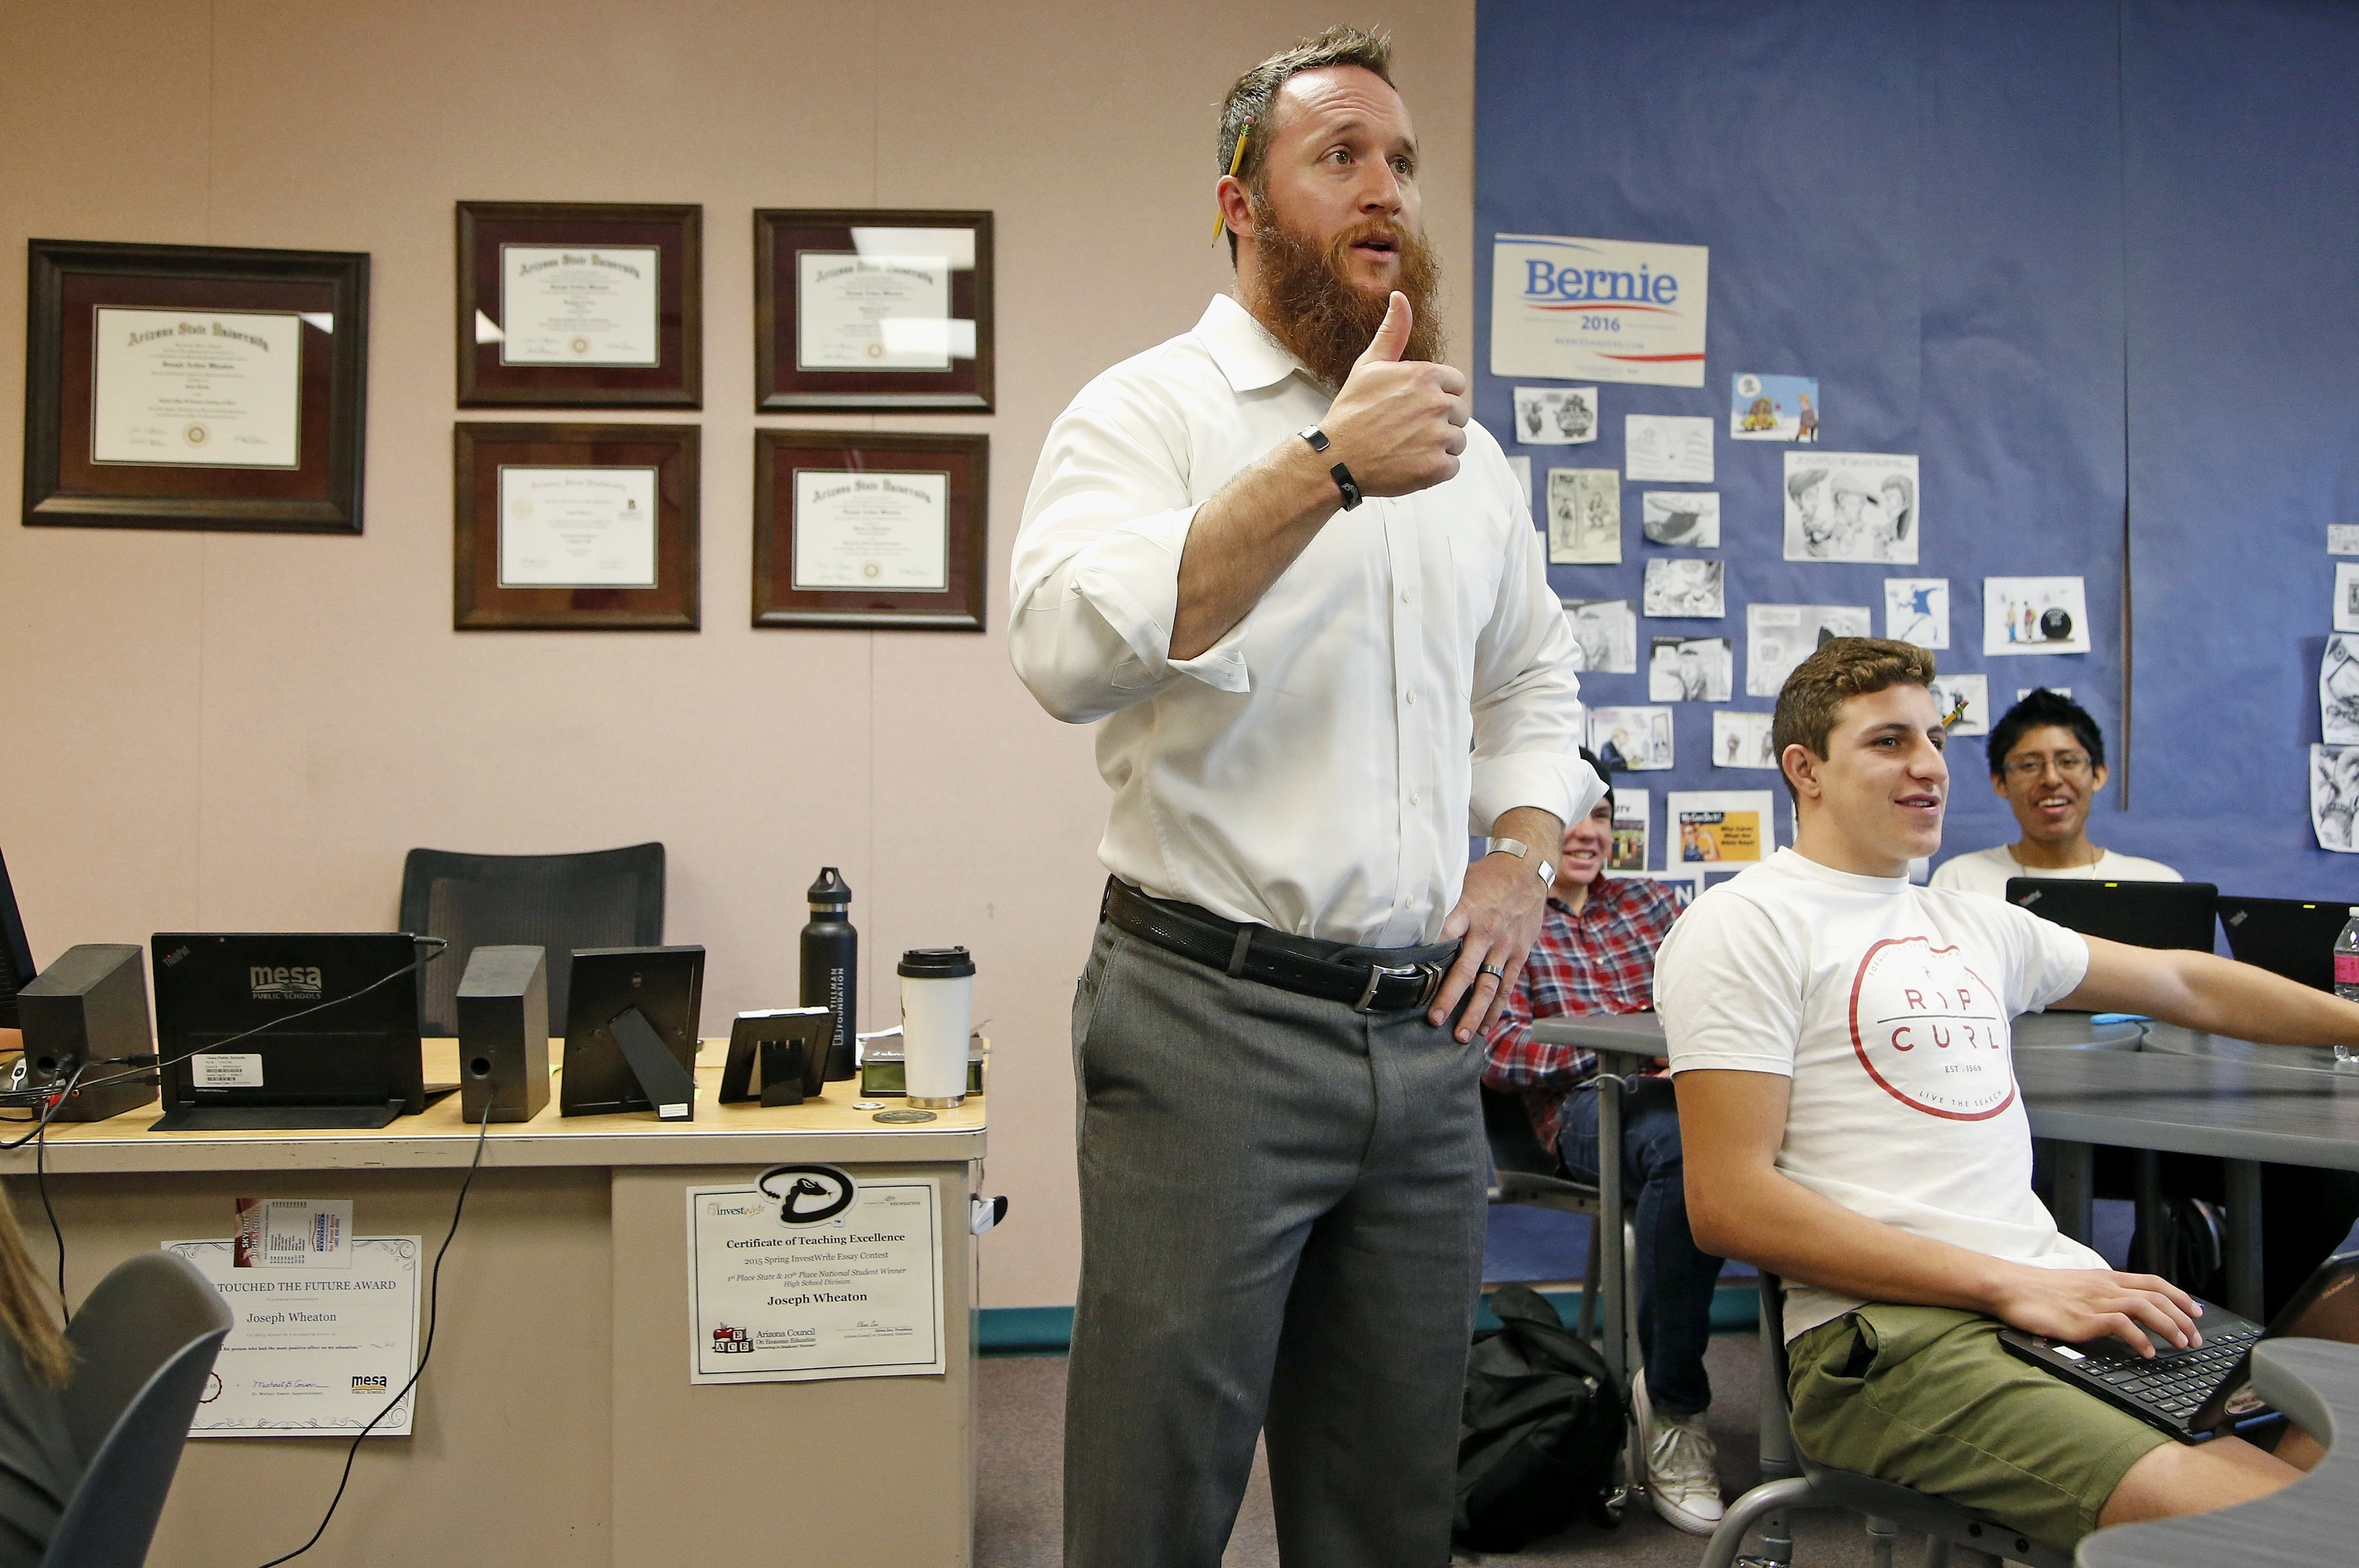 Joseph Wheaton, a teacher at Skyline High School, talks with his students Tuesday, Nov. 22, 2016, in Mesa, Ariz. Wheaton, a former U.S. Army Ranger, used a special scholarship by the Pat Tillman Foundation, the organization founded following the combat de